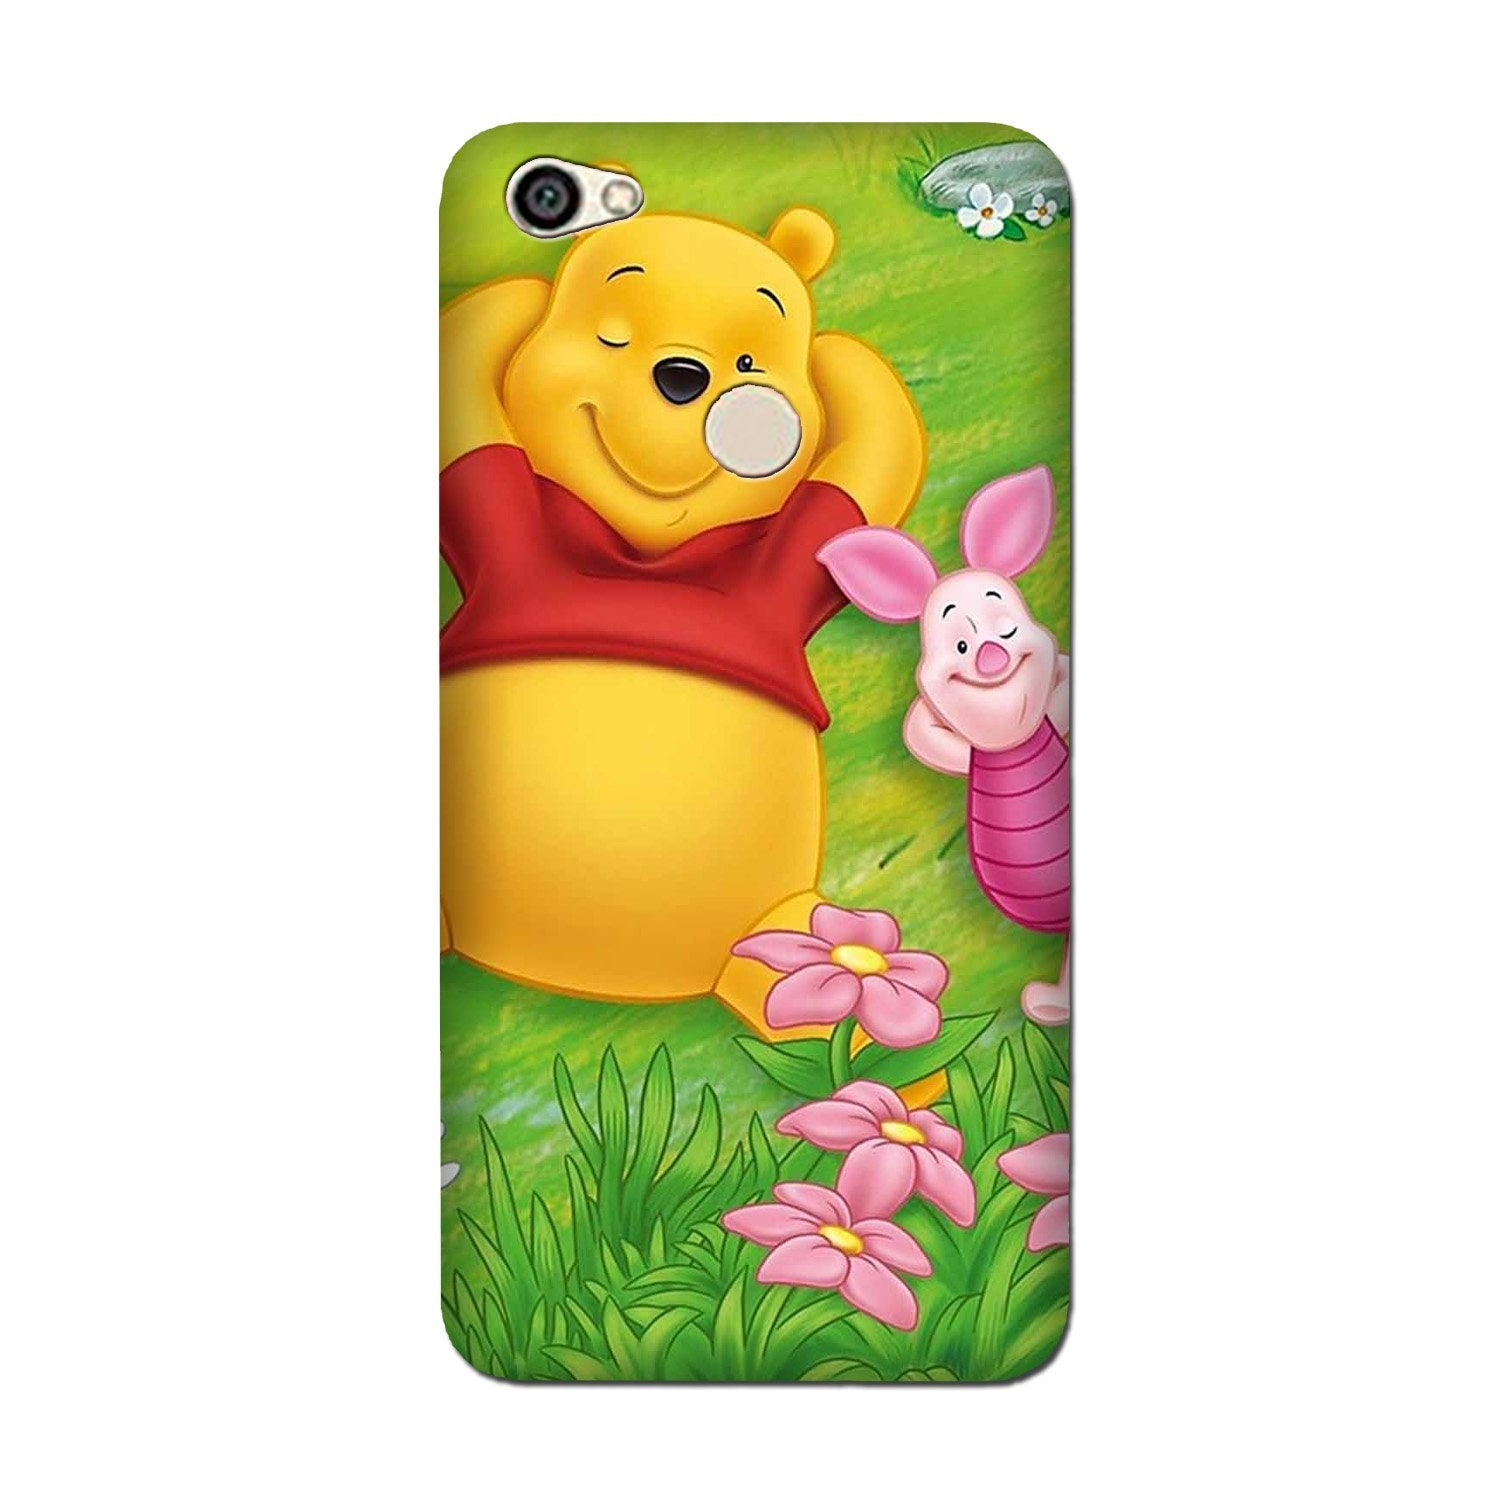 Winnie The Pooh Mobile Back Case for Oppo F5 (Design - 348)